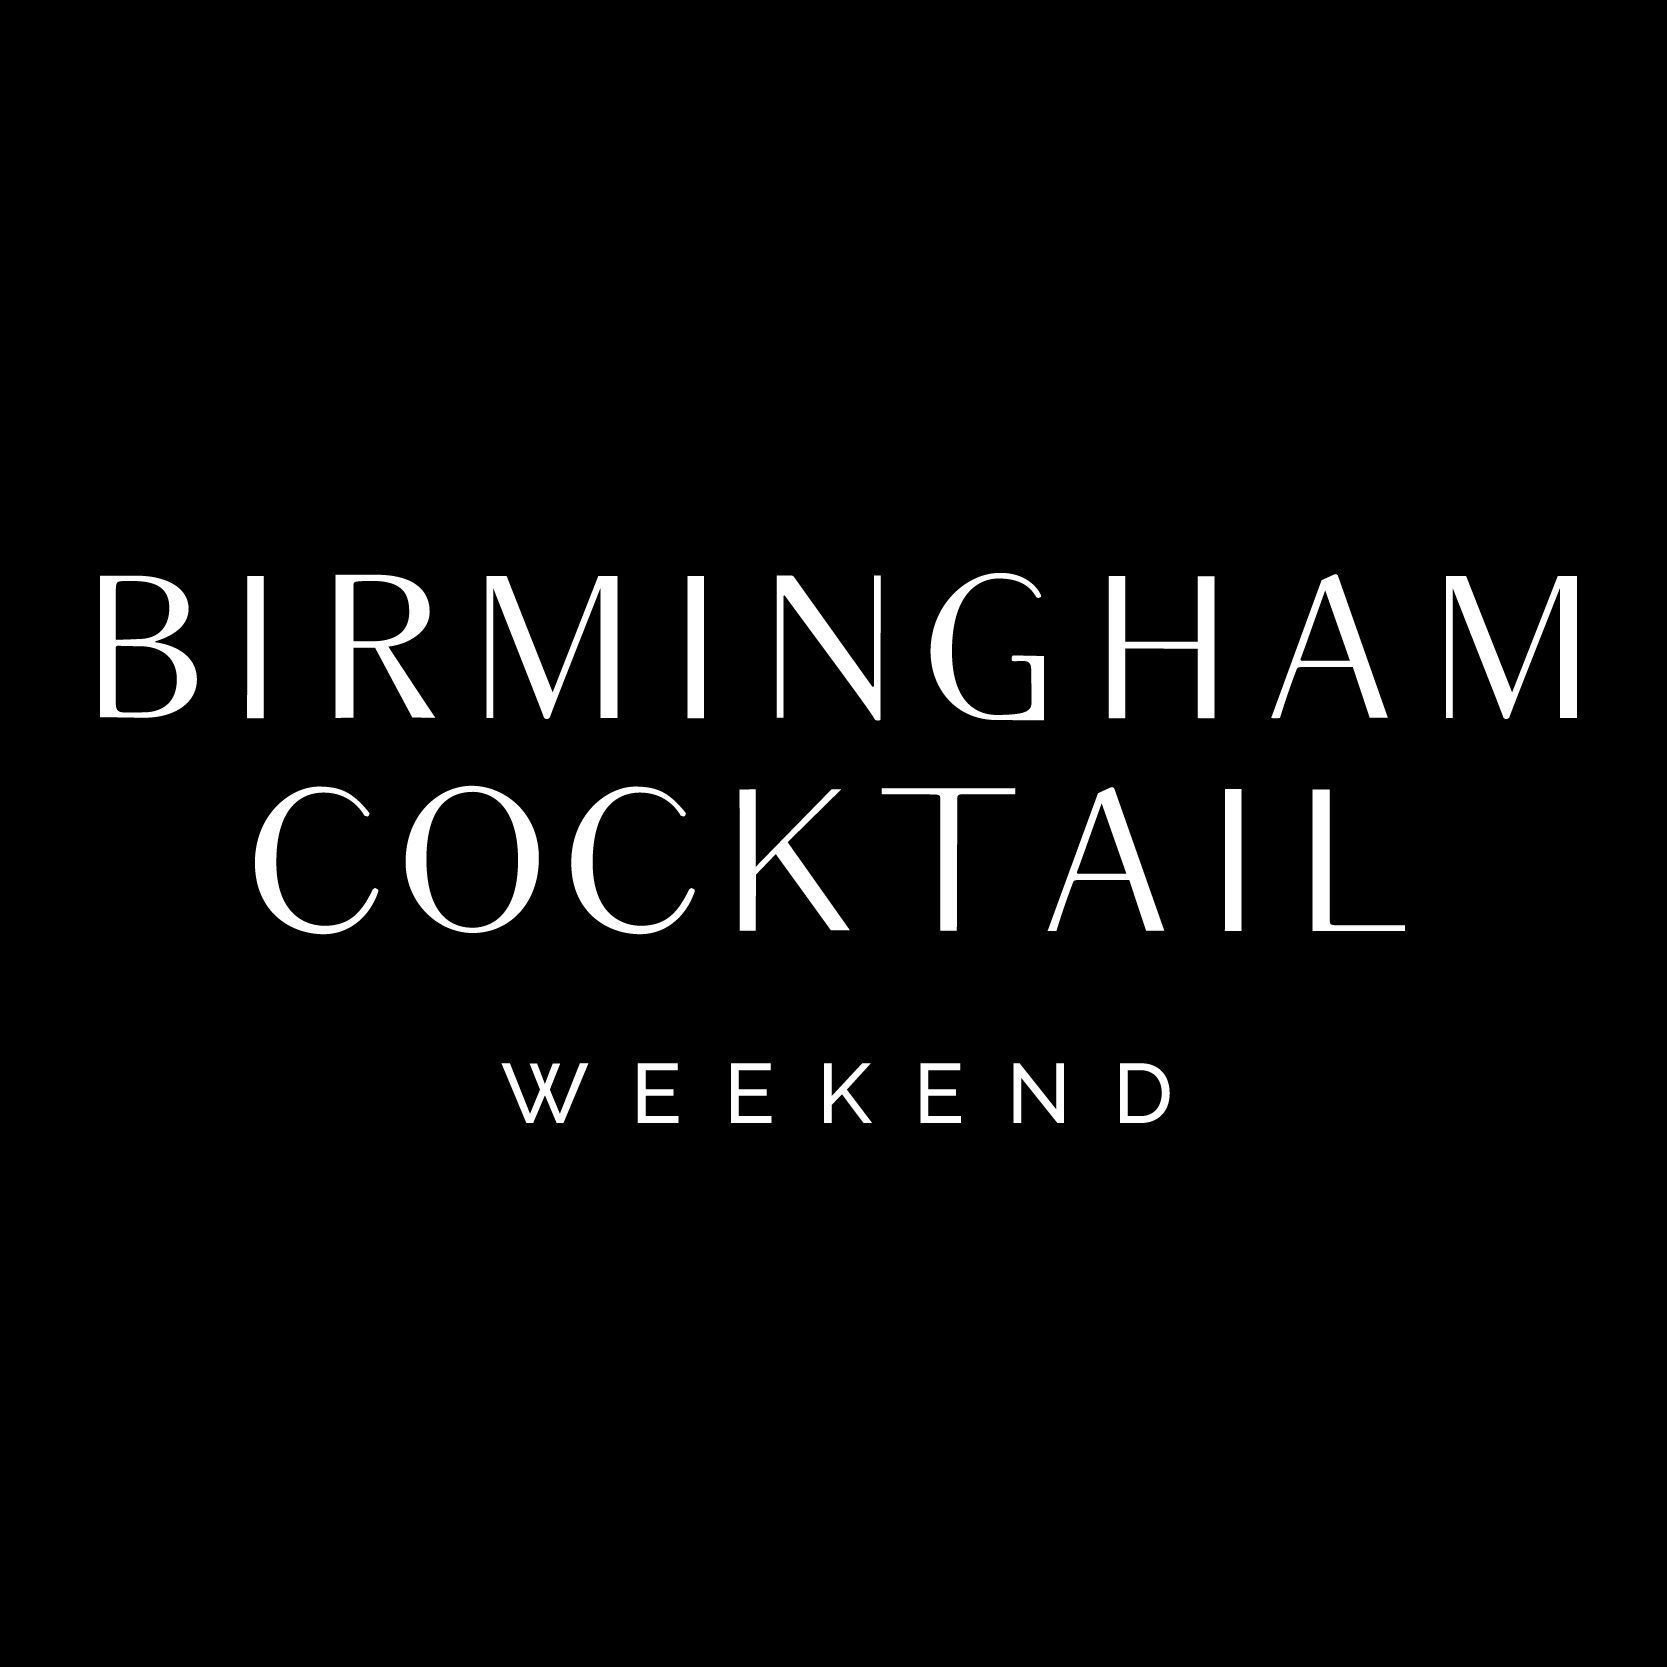 Birmingham Cocktail Weekend